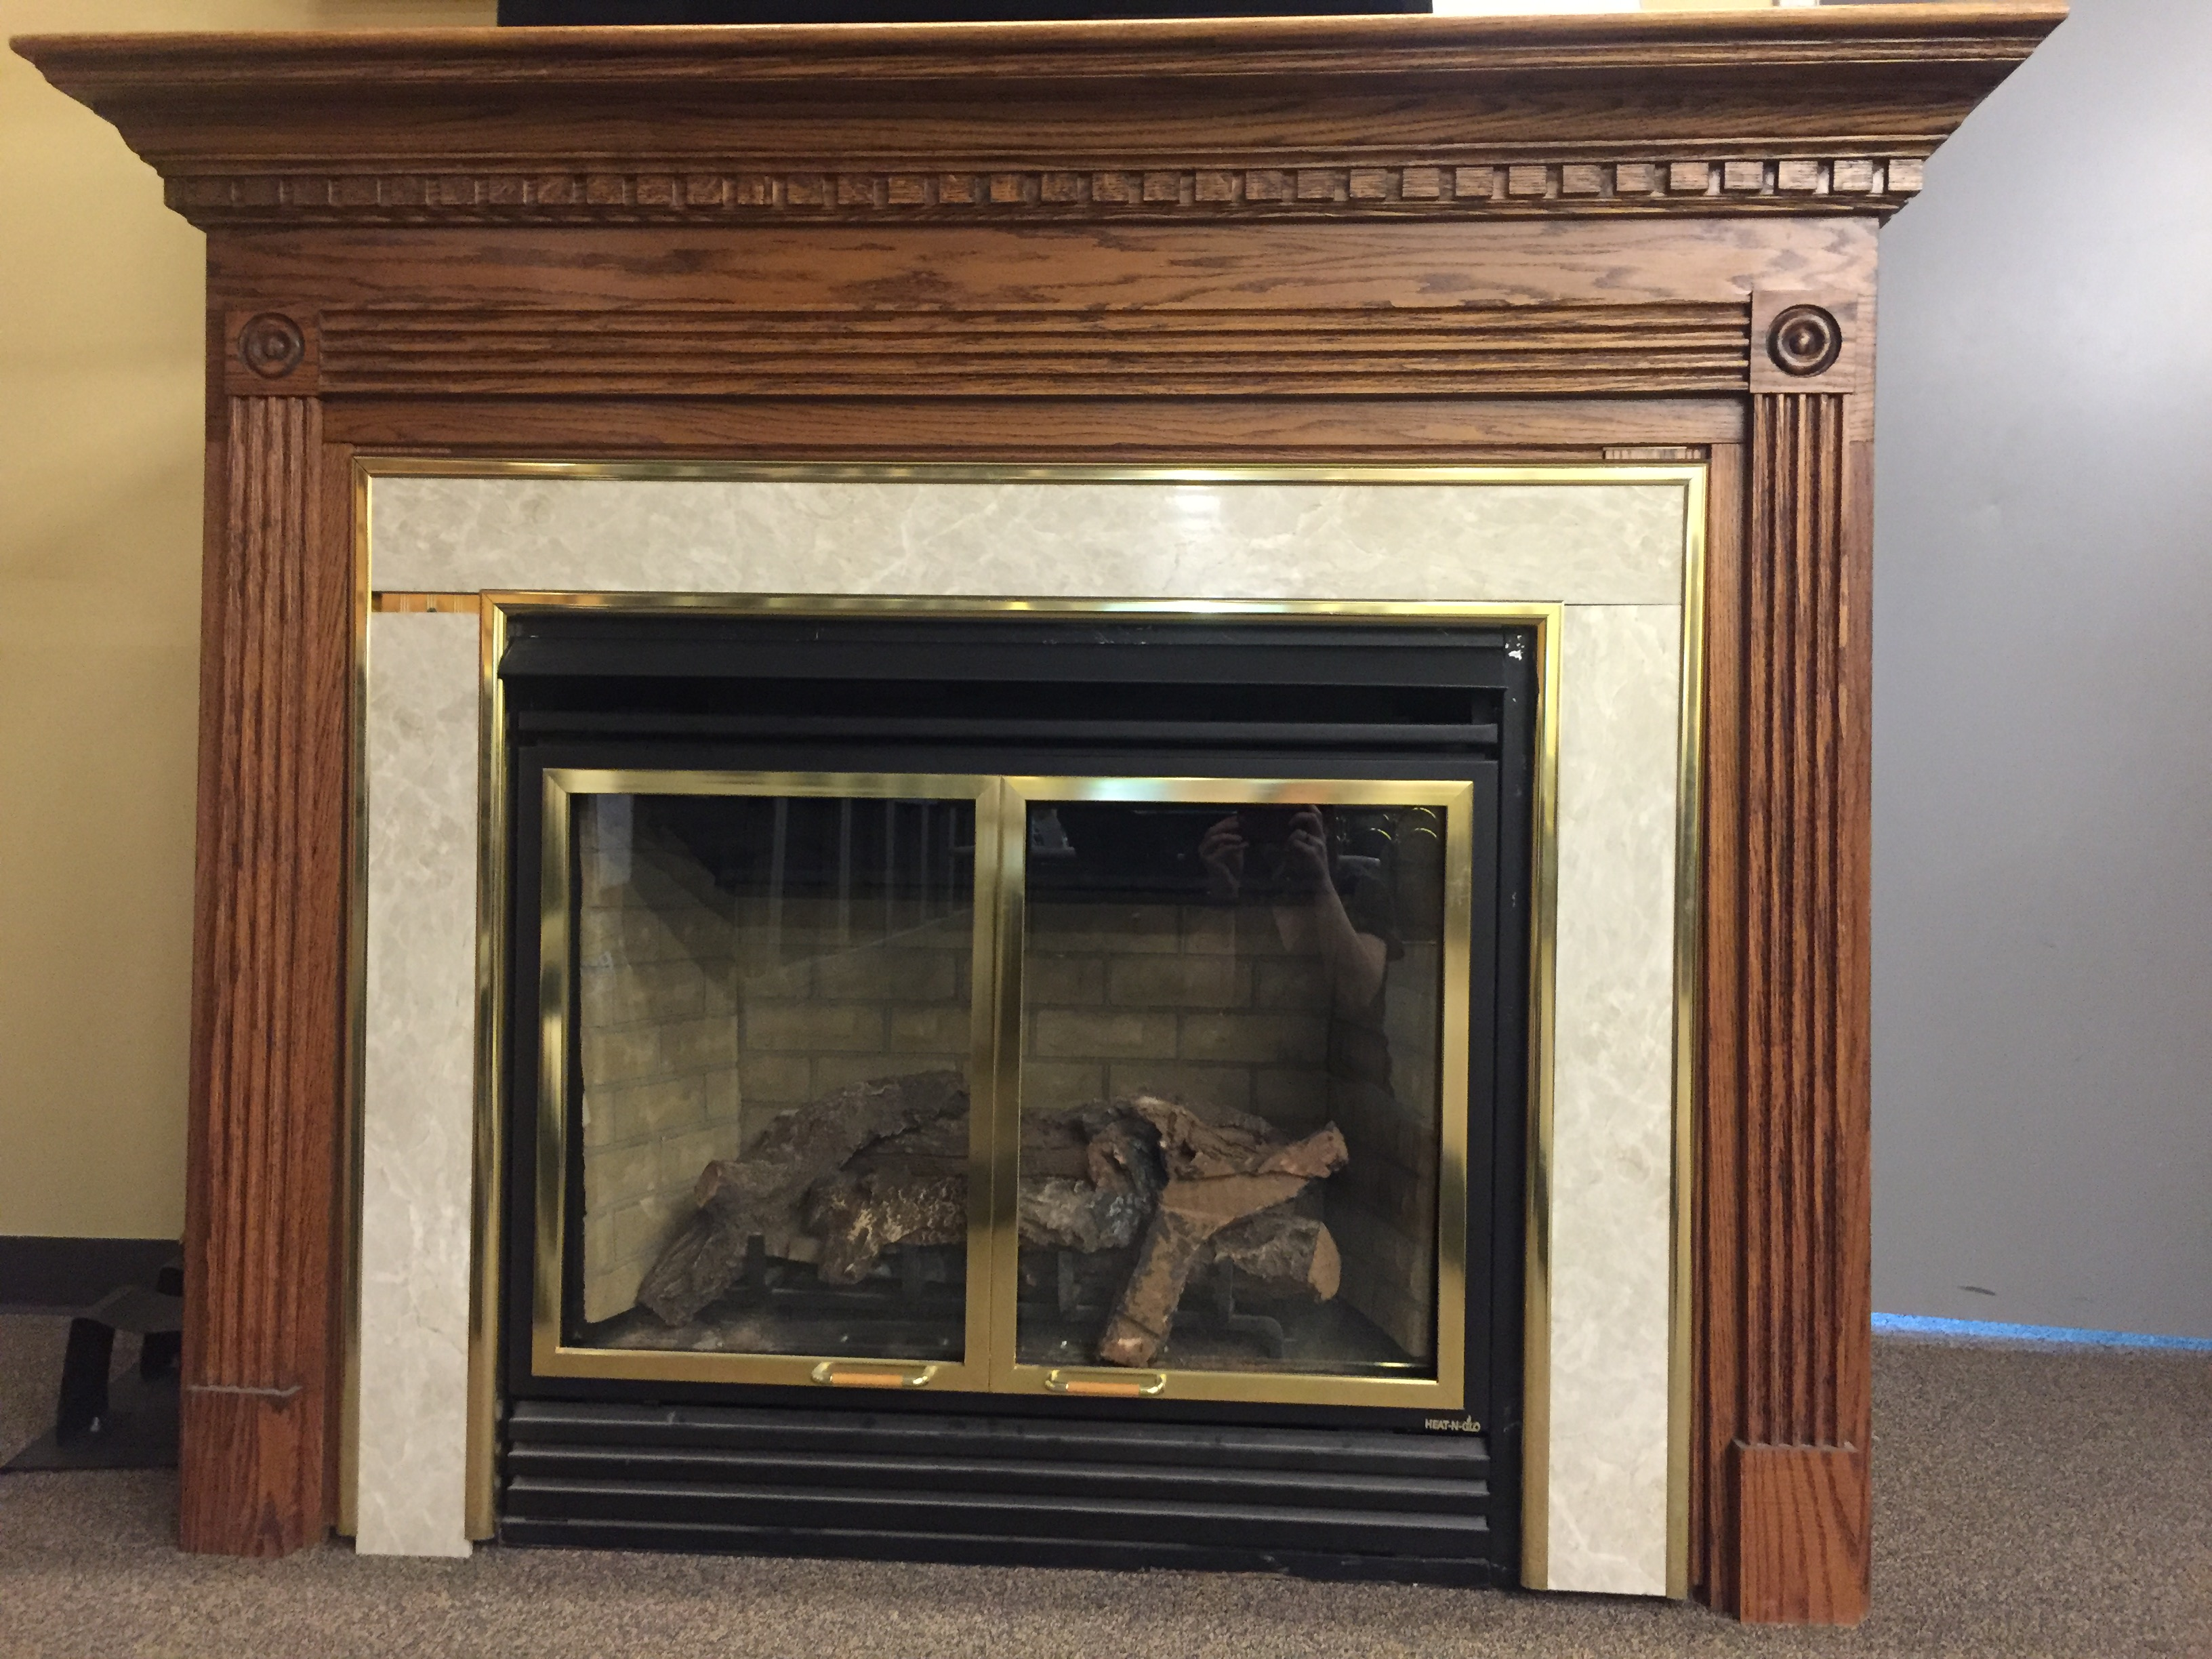 fireplace in ah then gas installing installation construction mantle amazing contemporary vented energy relaxing natural w graphic stupendous ventless glass options a venting also